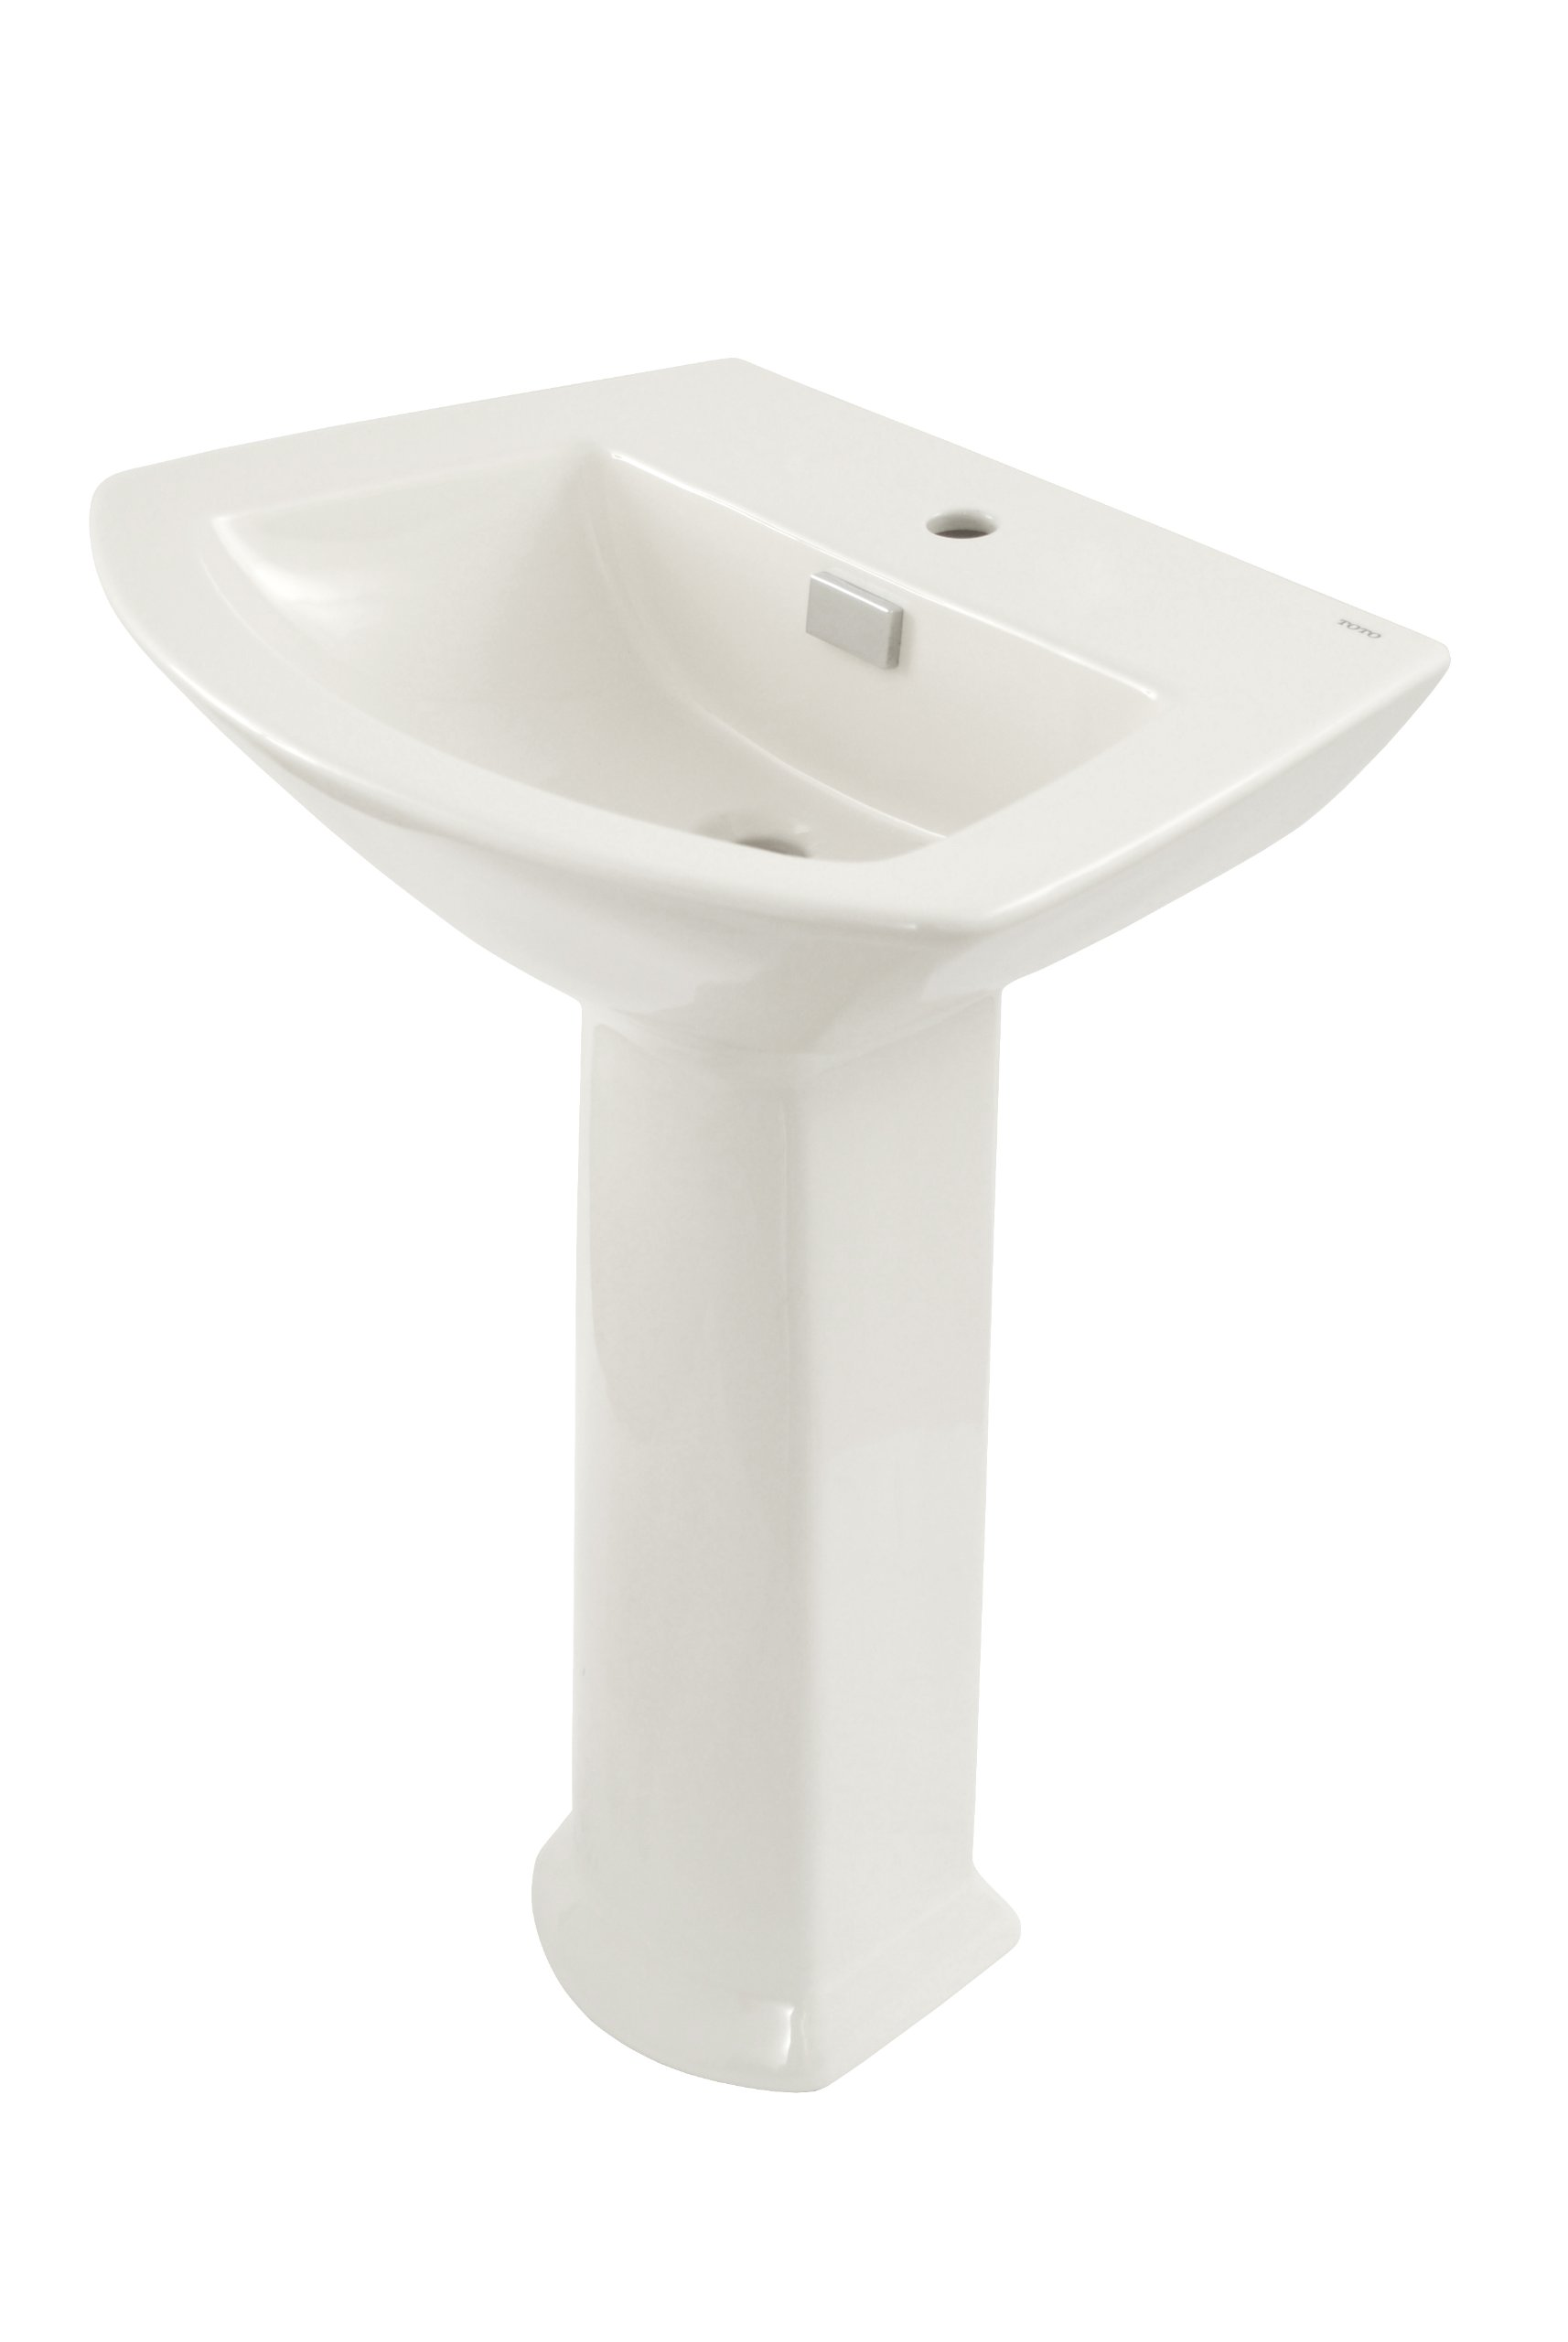 TOTO LPT960#01 Soiree Lavatory and Pedestal with Single Hole, Cotton White